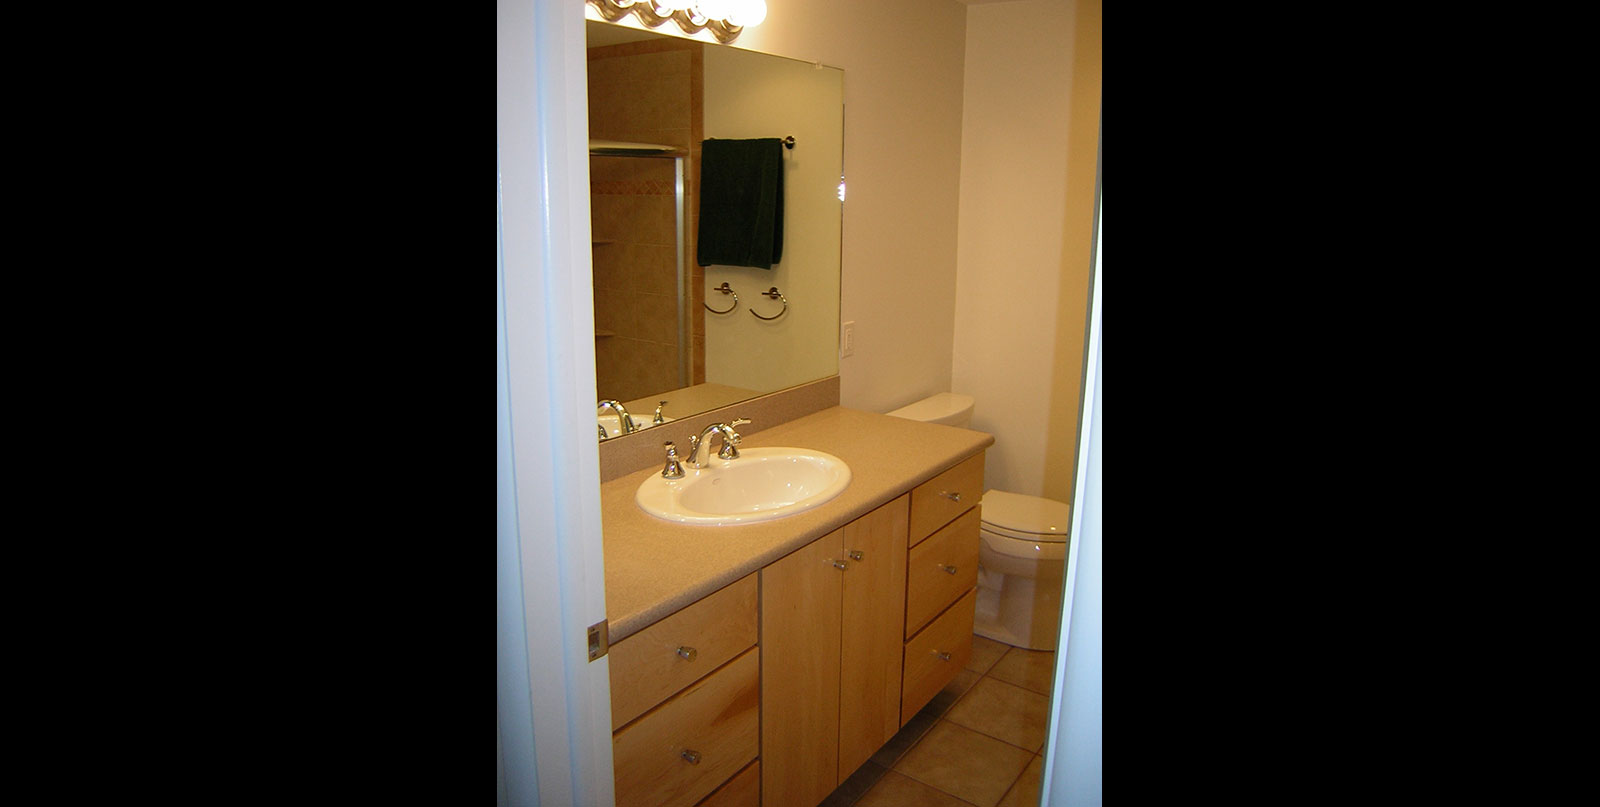 Covenant Construction Group - Bathroom Remodel, Half Bathroom with Mirror and Custom Cabinets - Ann Arbor, MI